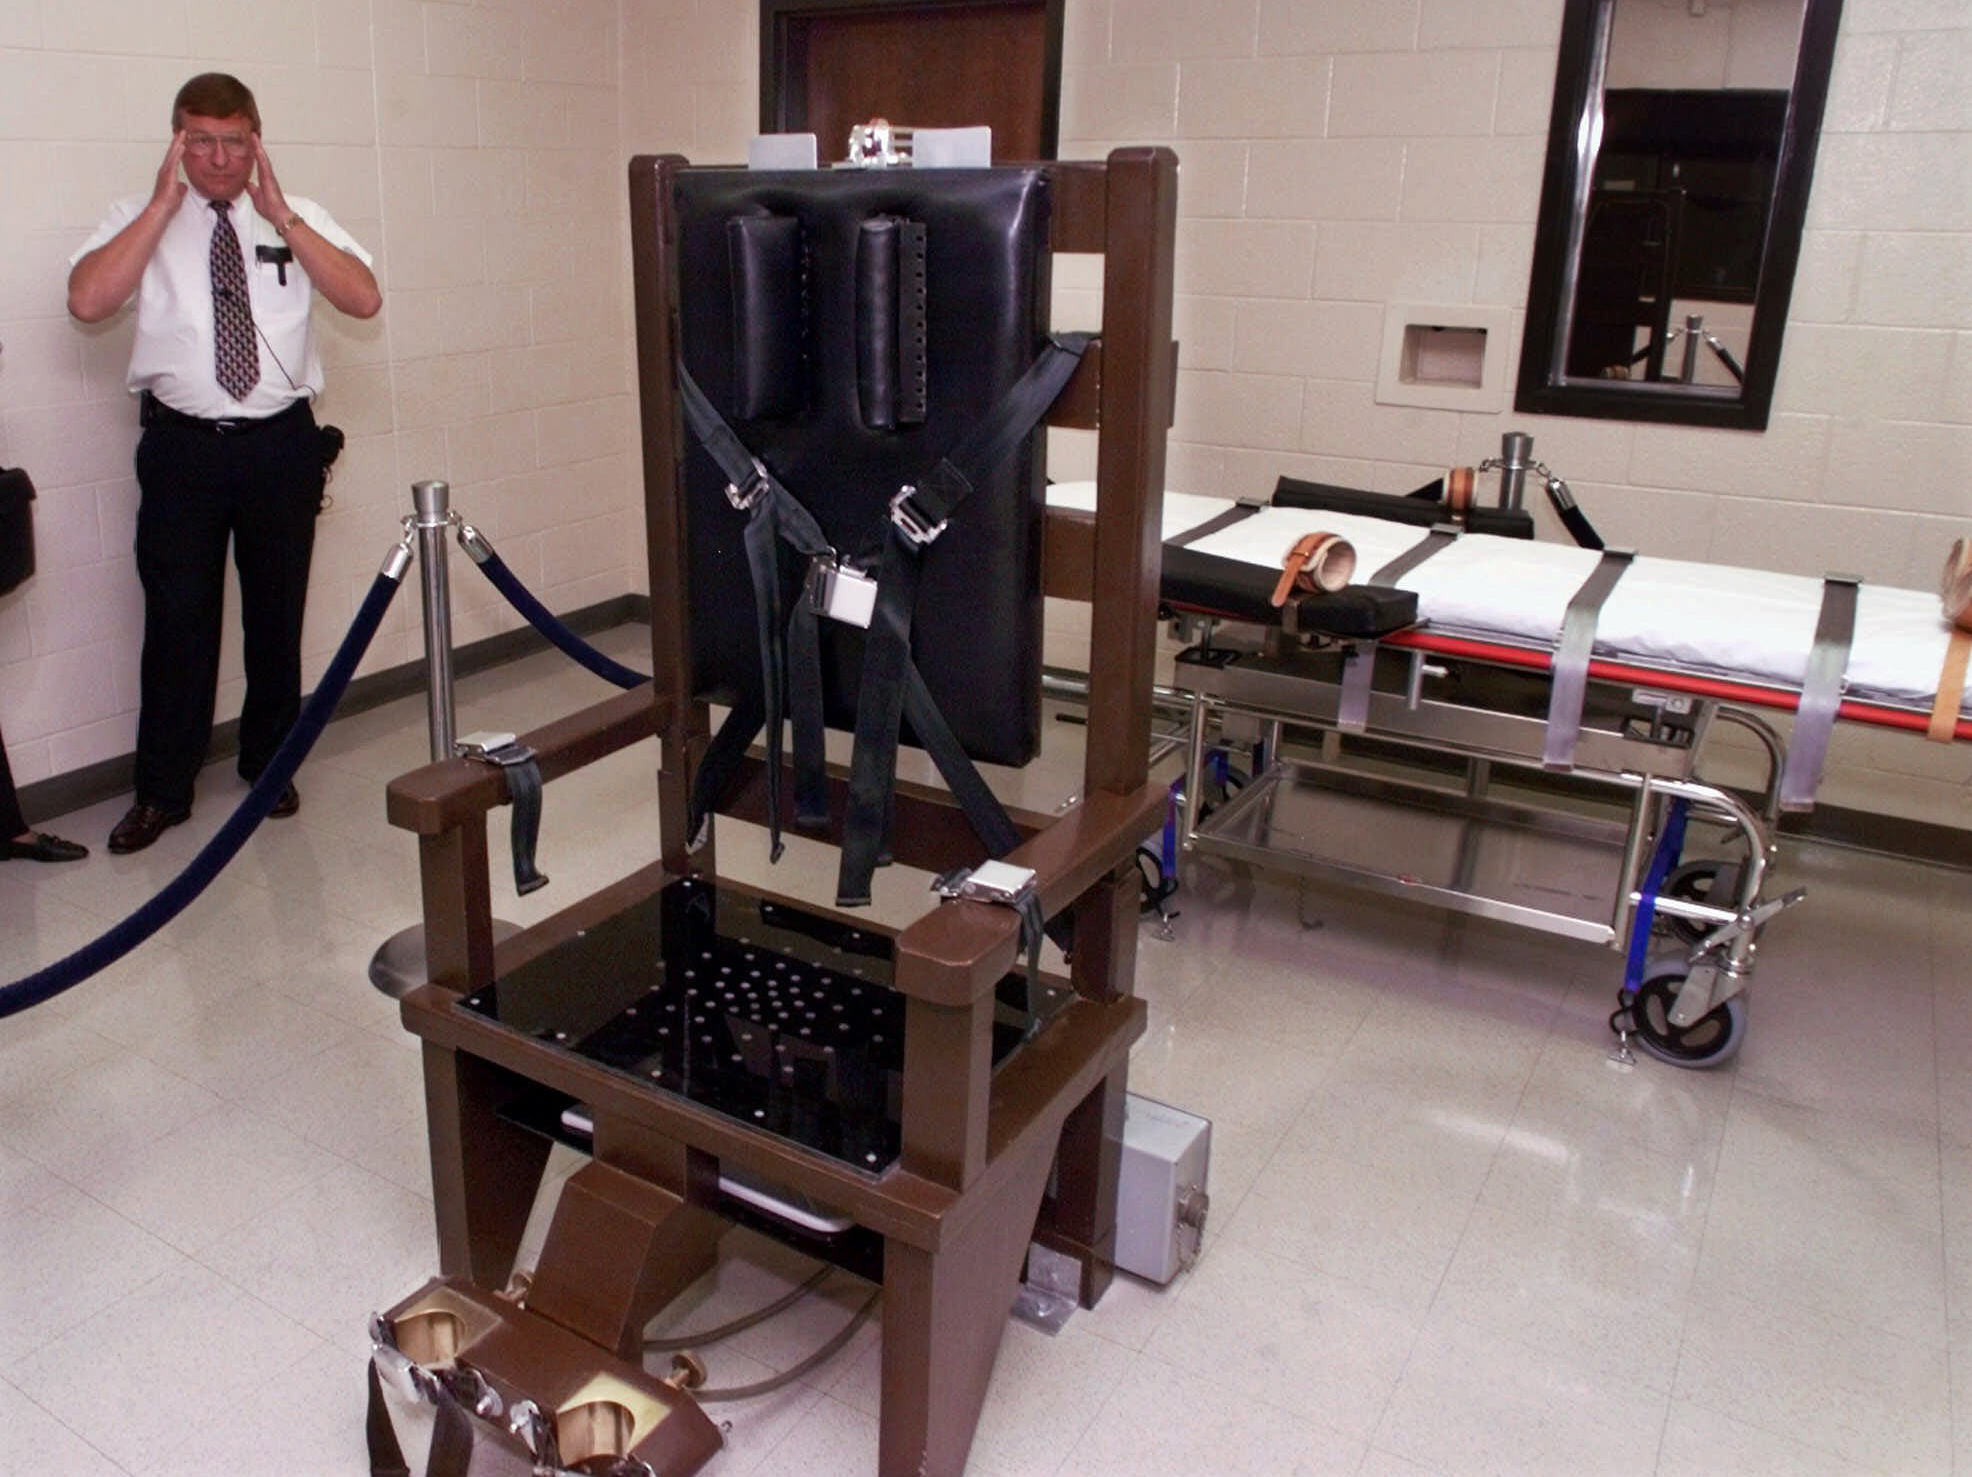 A warden at Riverbend Maximum Security Institution in Nashville, Tenn., is shown in the prison's execution chamber in 1999. The electric chair is shown next to a lethal injection gurney.